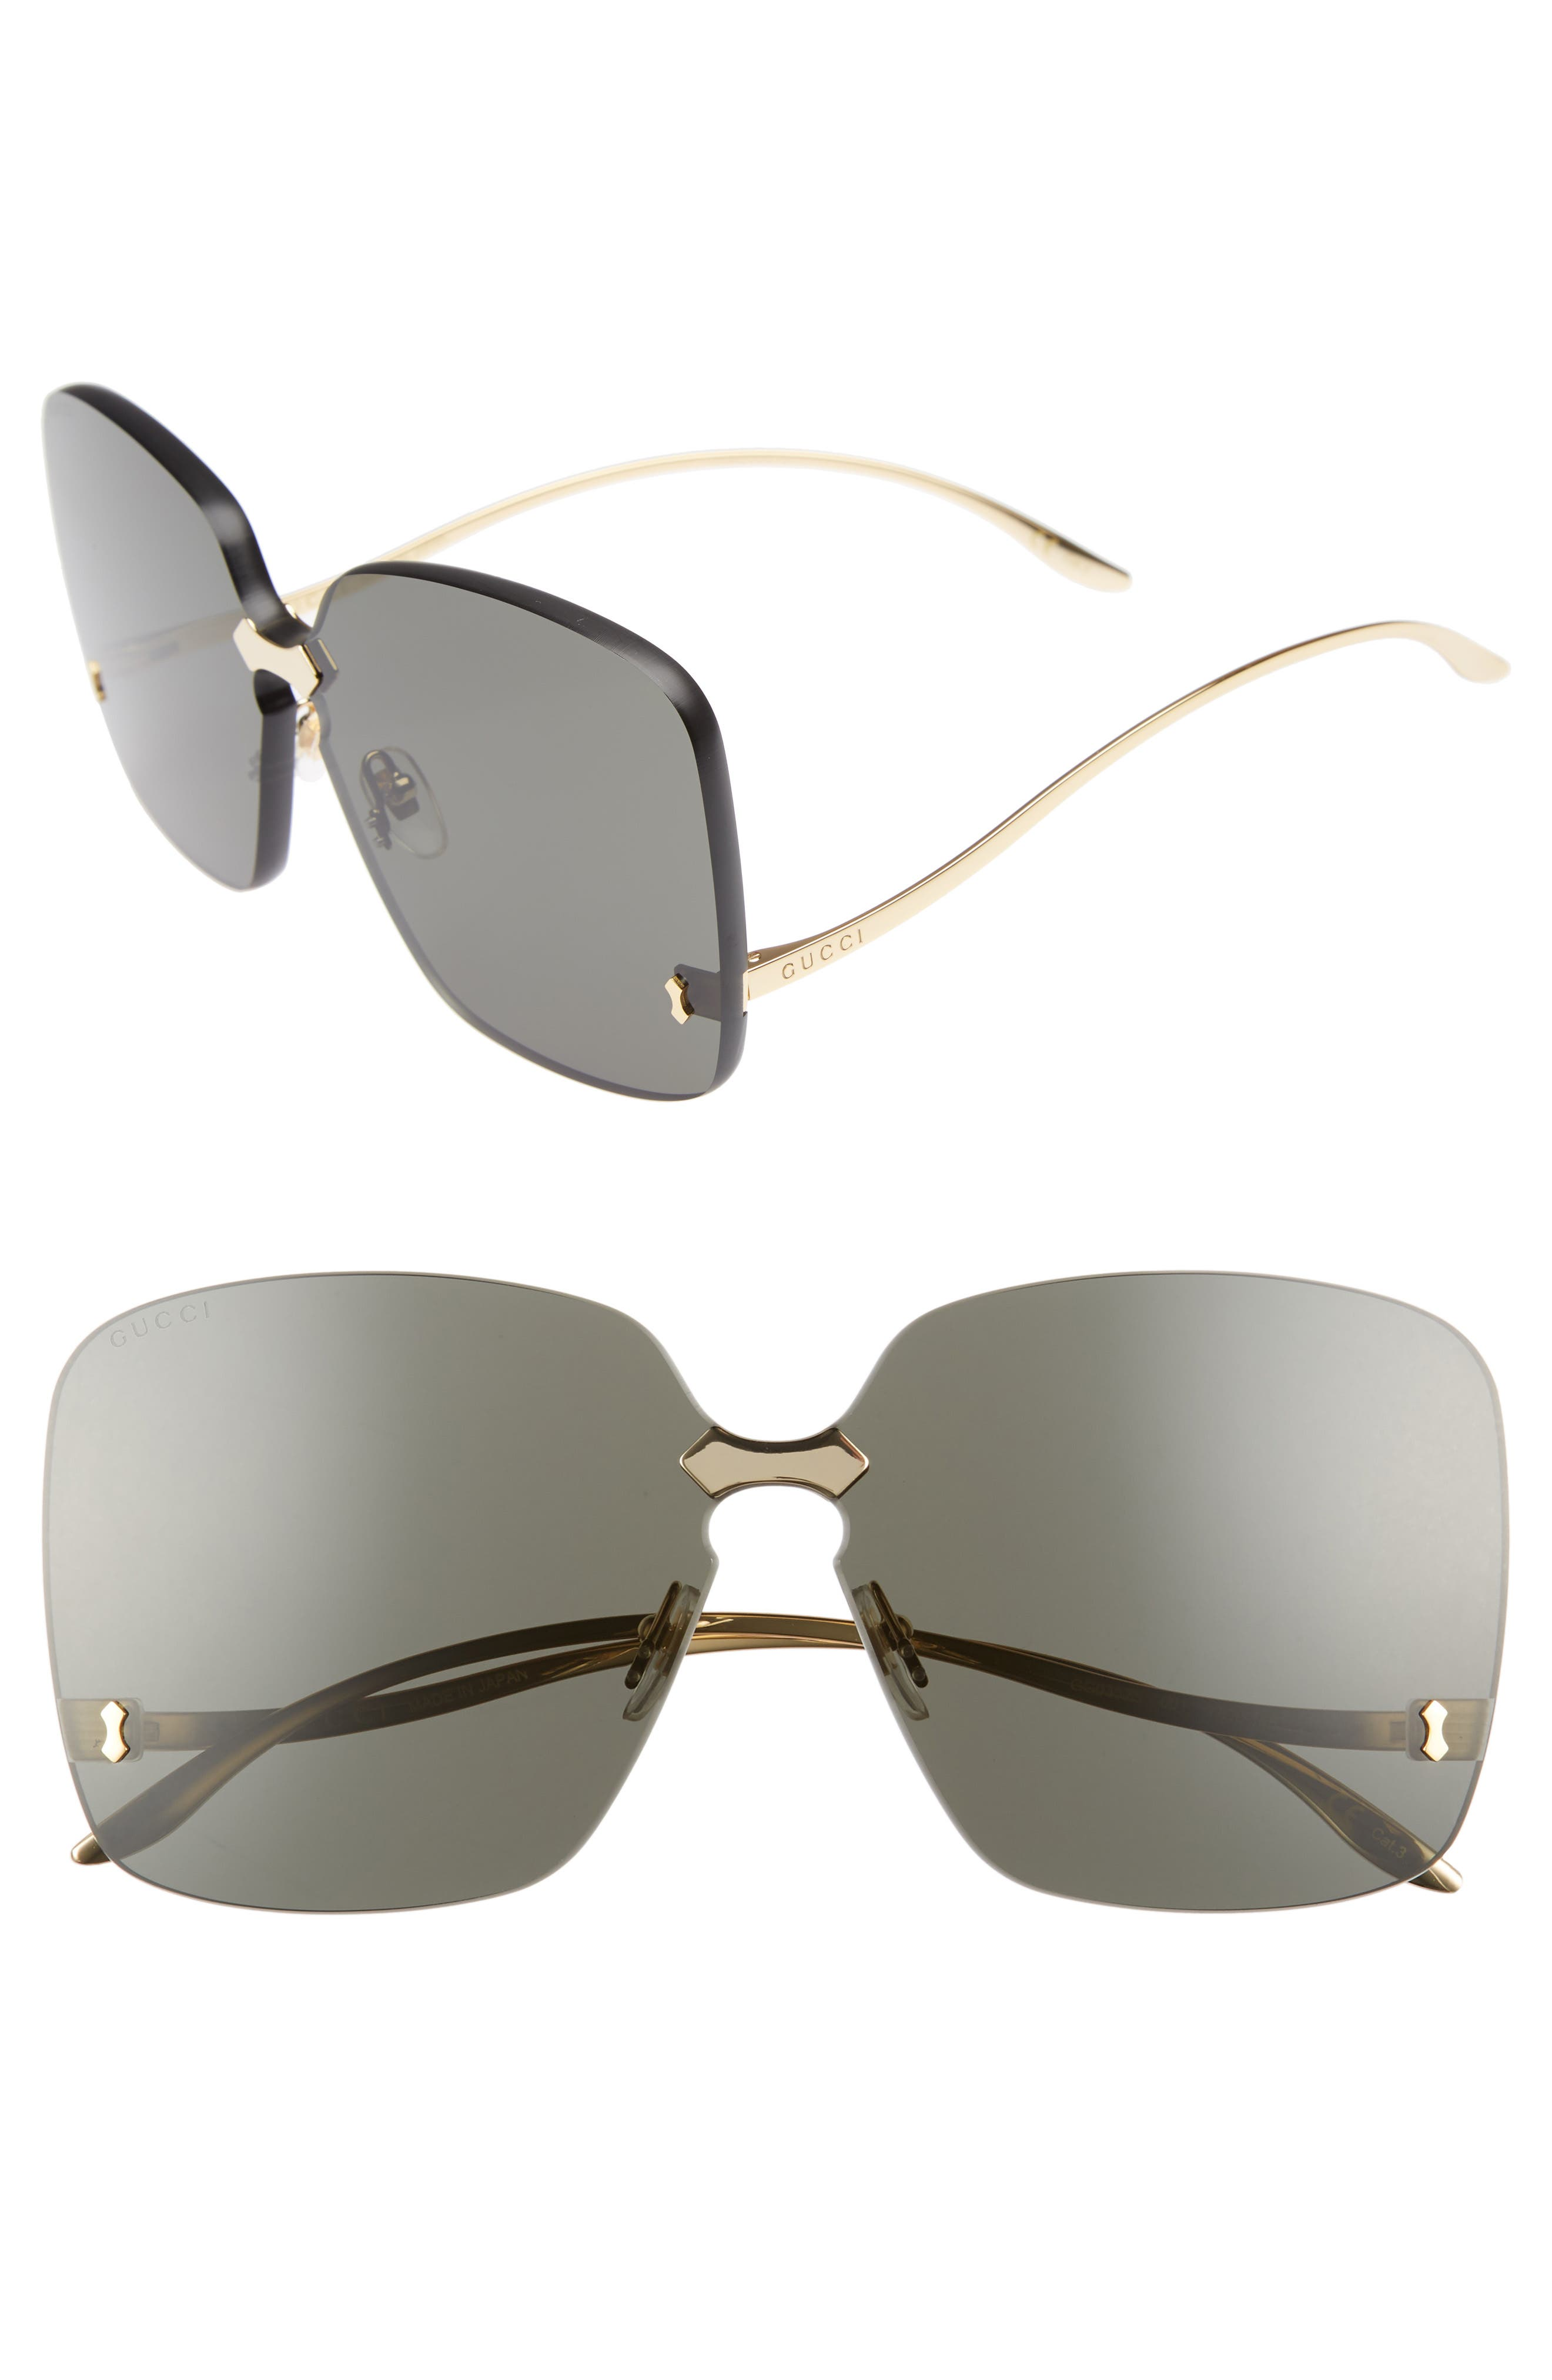 Gucci 99mm Rimless Sunglasses